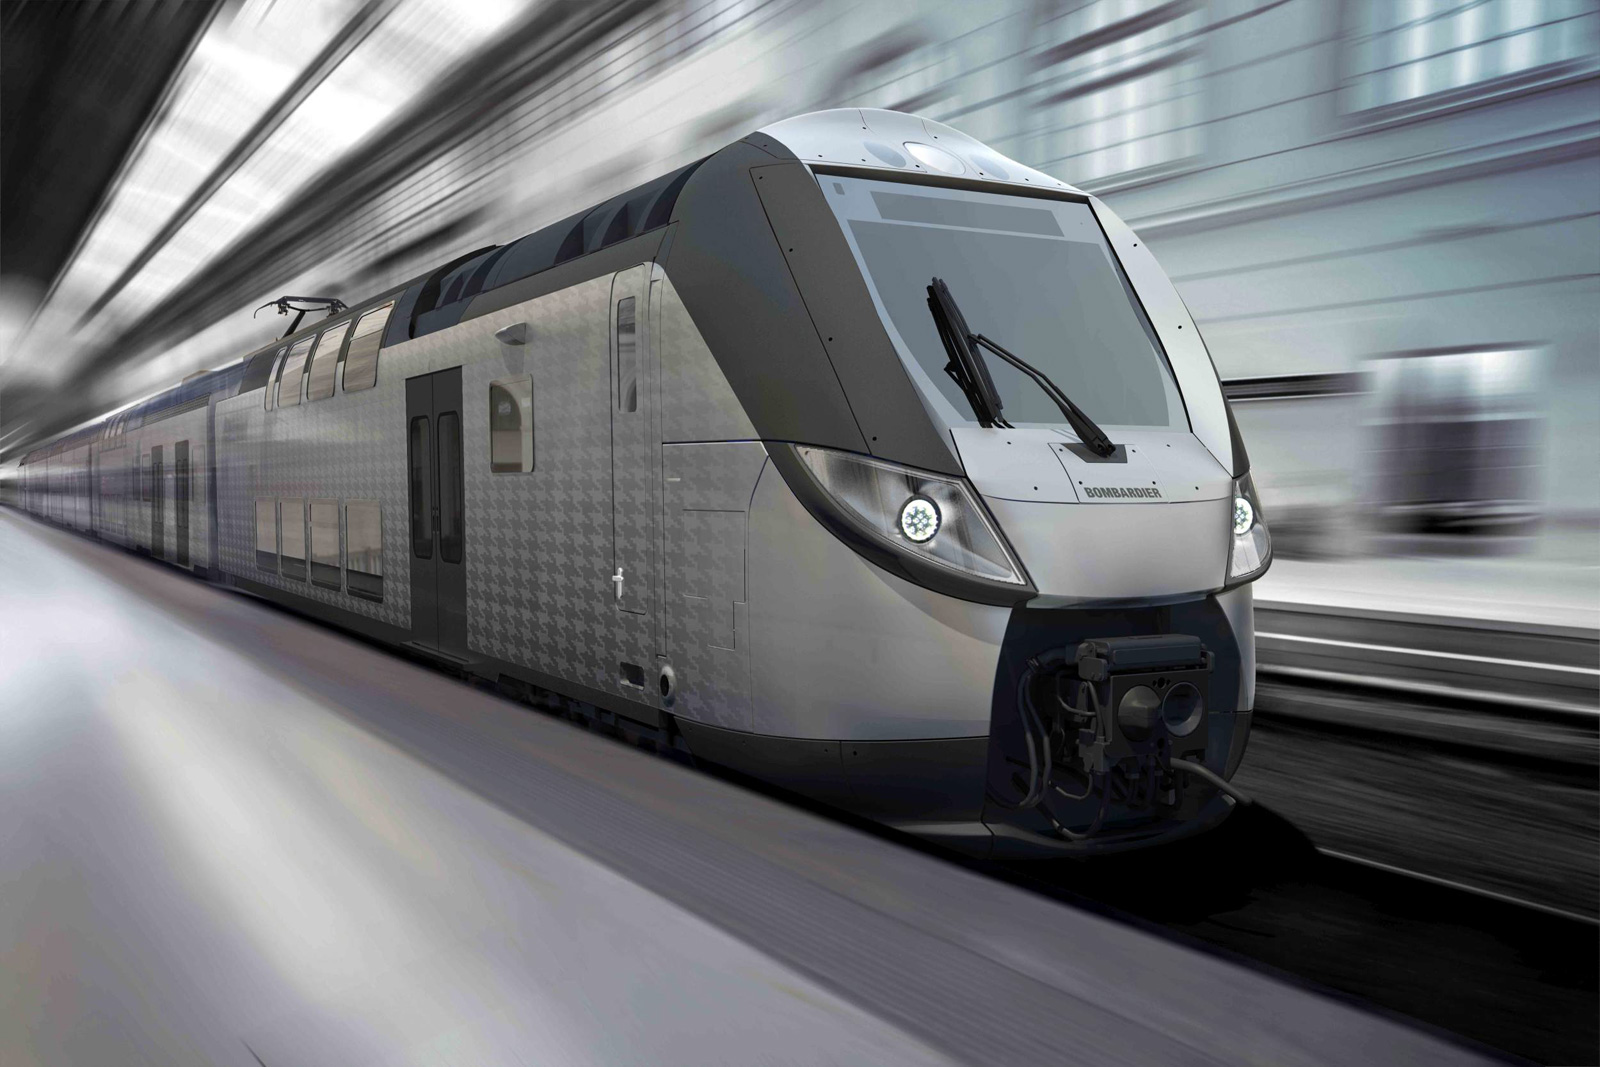 [FR] Bombardier's intercity train for France: OMNEO Premium